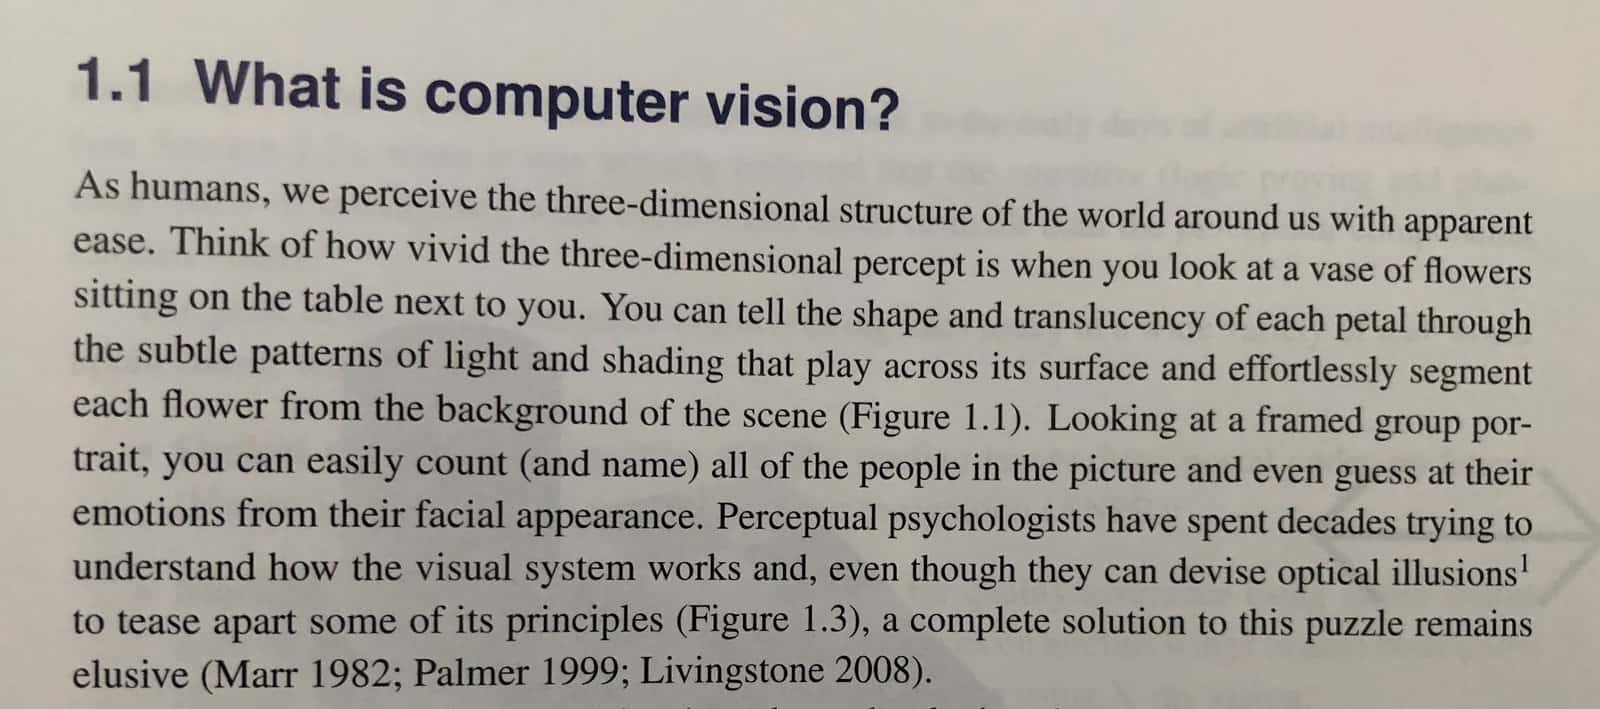 Scanned page of a book on Computer Vision